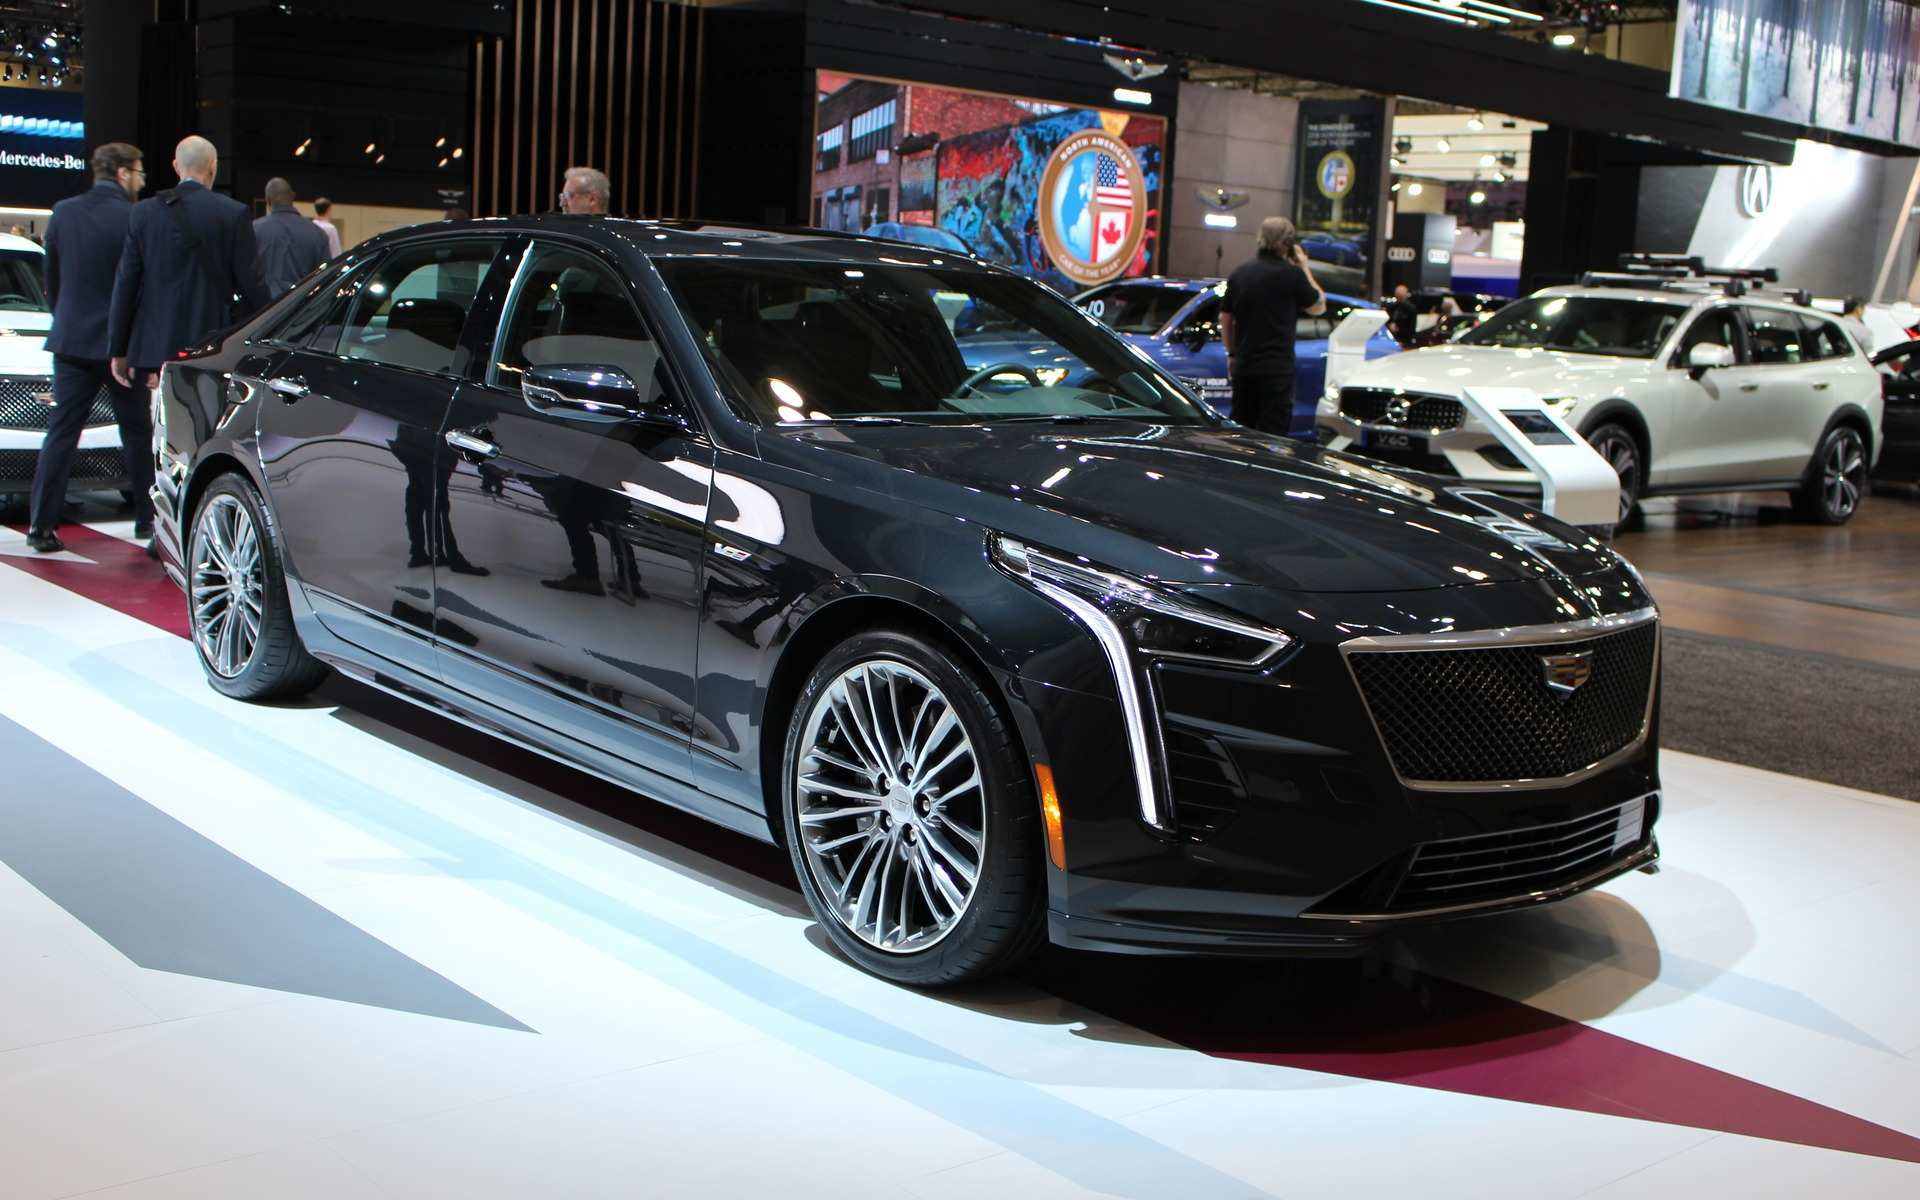 77 The Best 2020 Cadillac Ct6 V Price